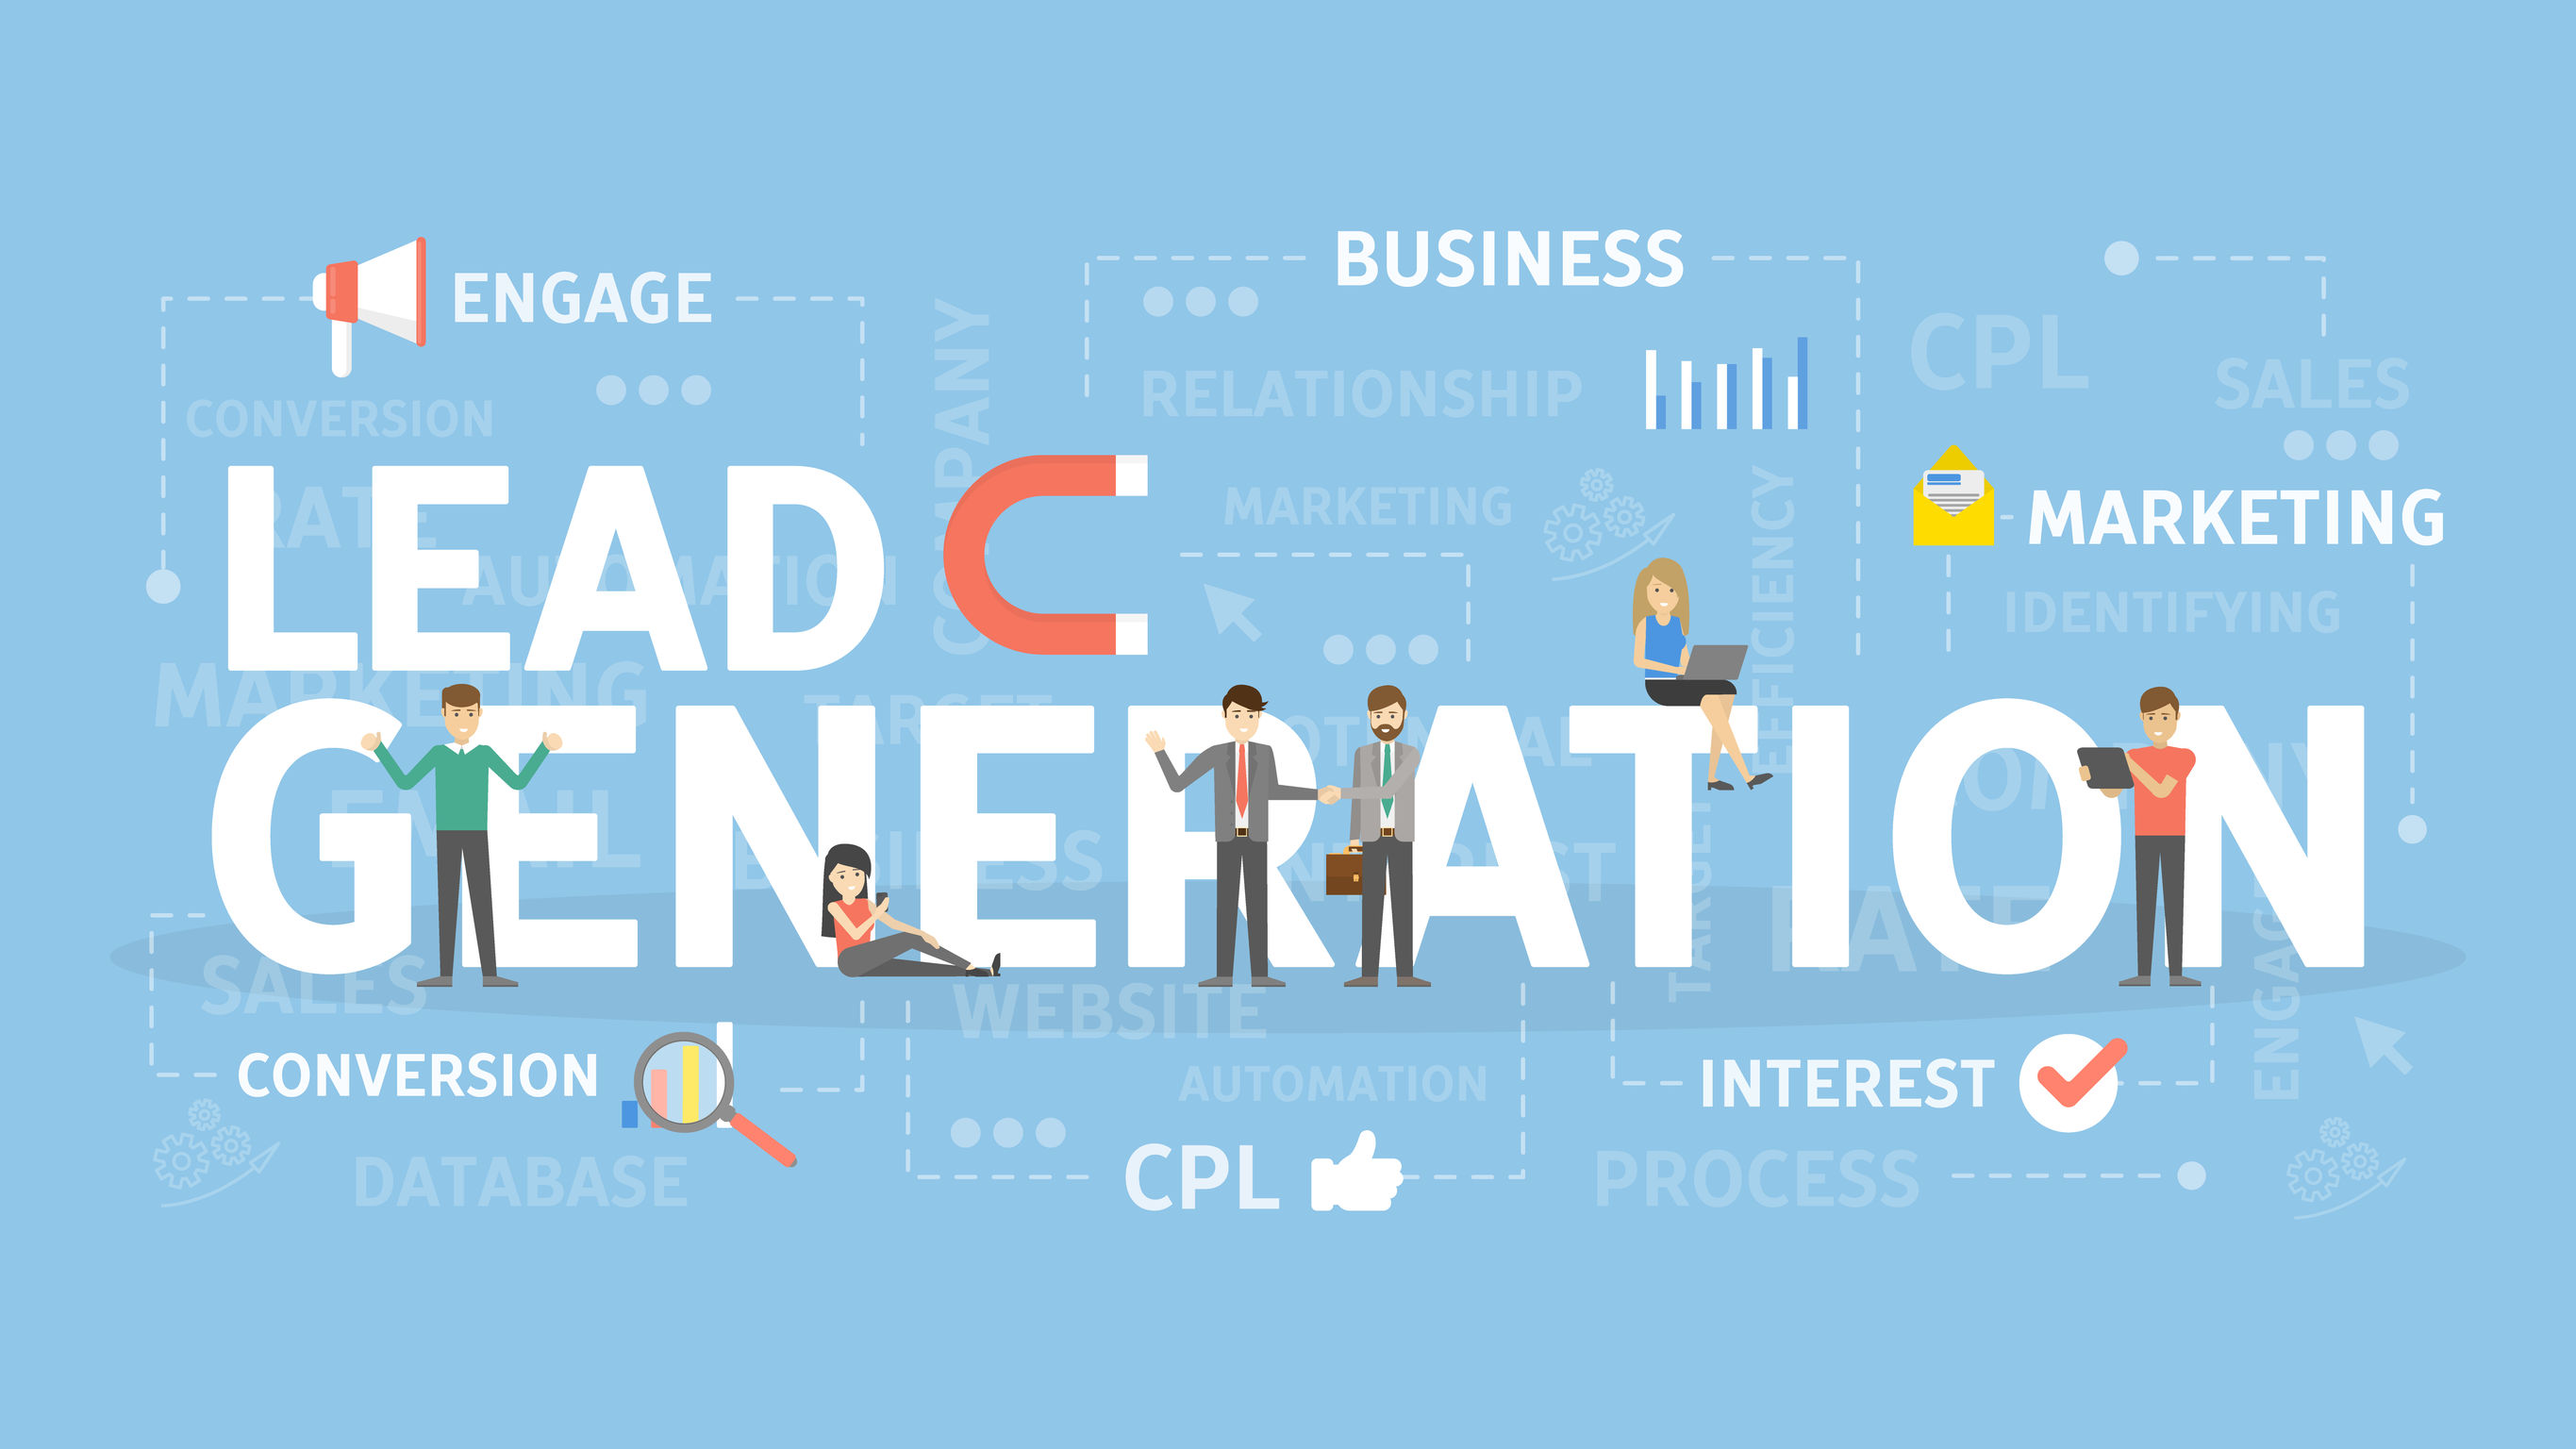 Higher Education Lead Generation - Building A Successful Strategy